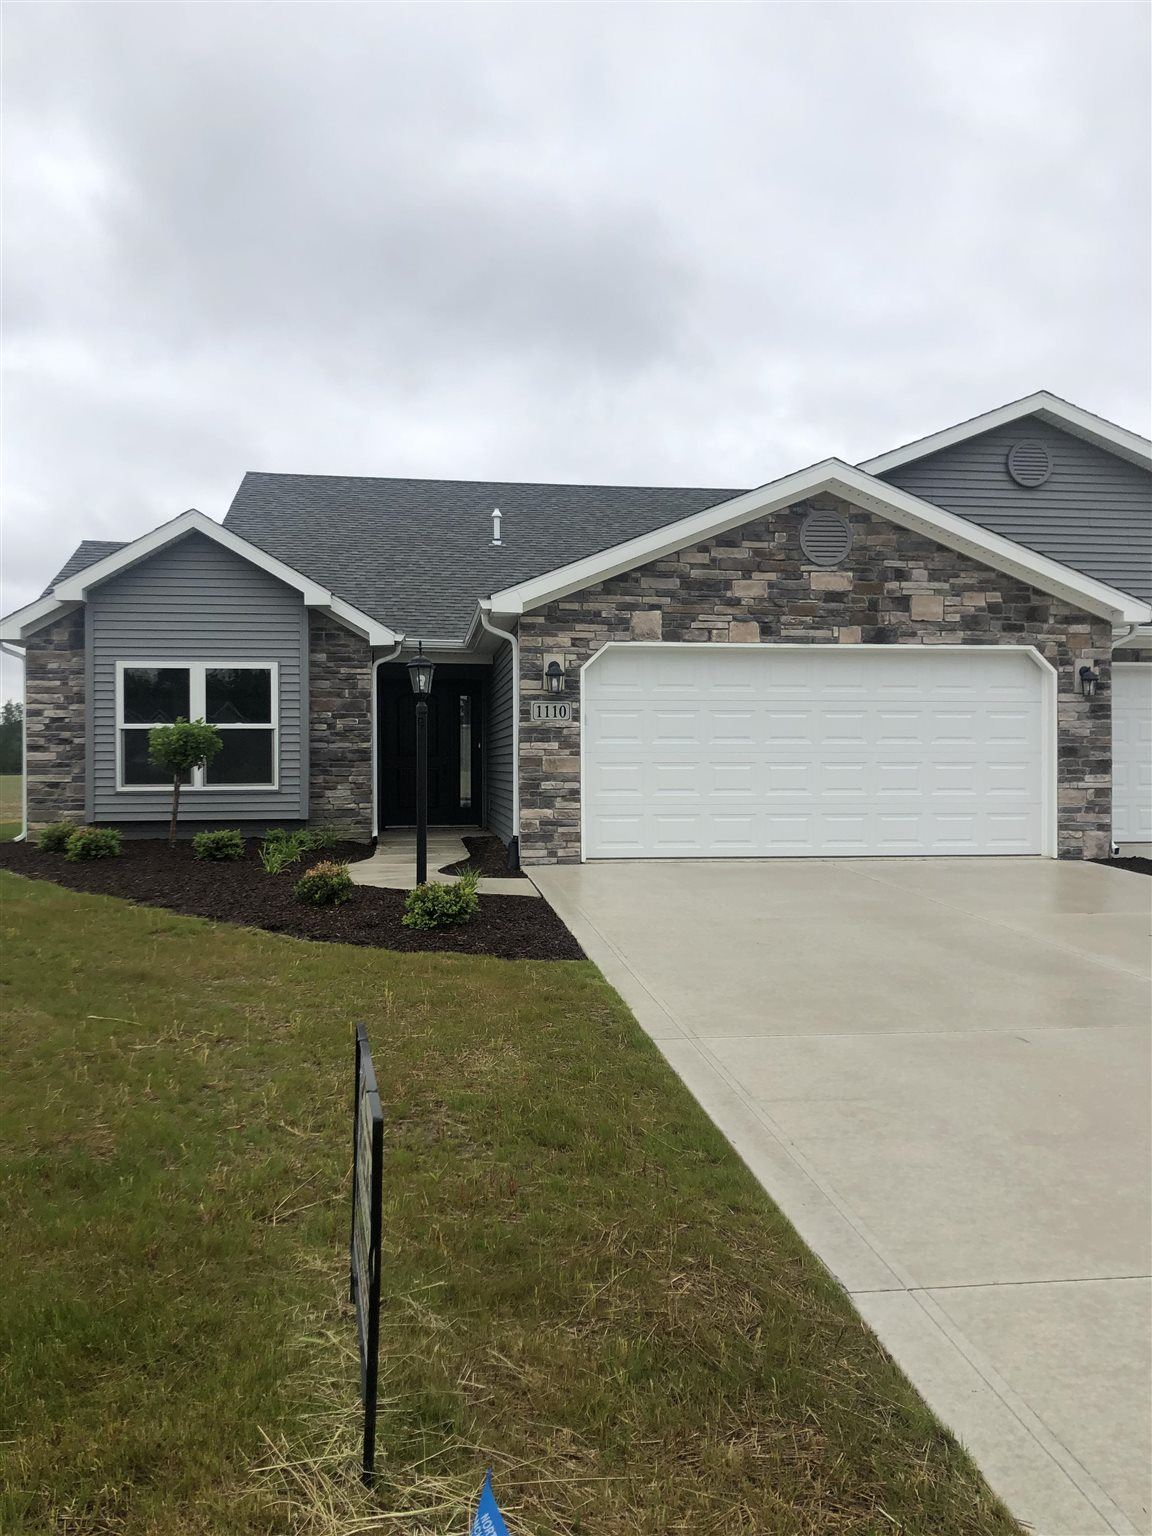 1110 Marshall Way, North Manchester, IN 46962 - #: 202106781